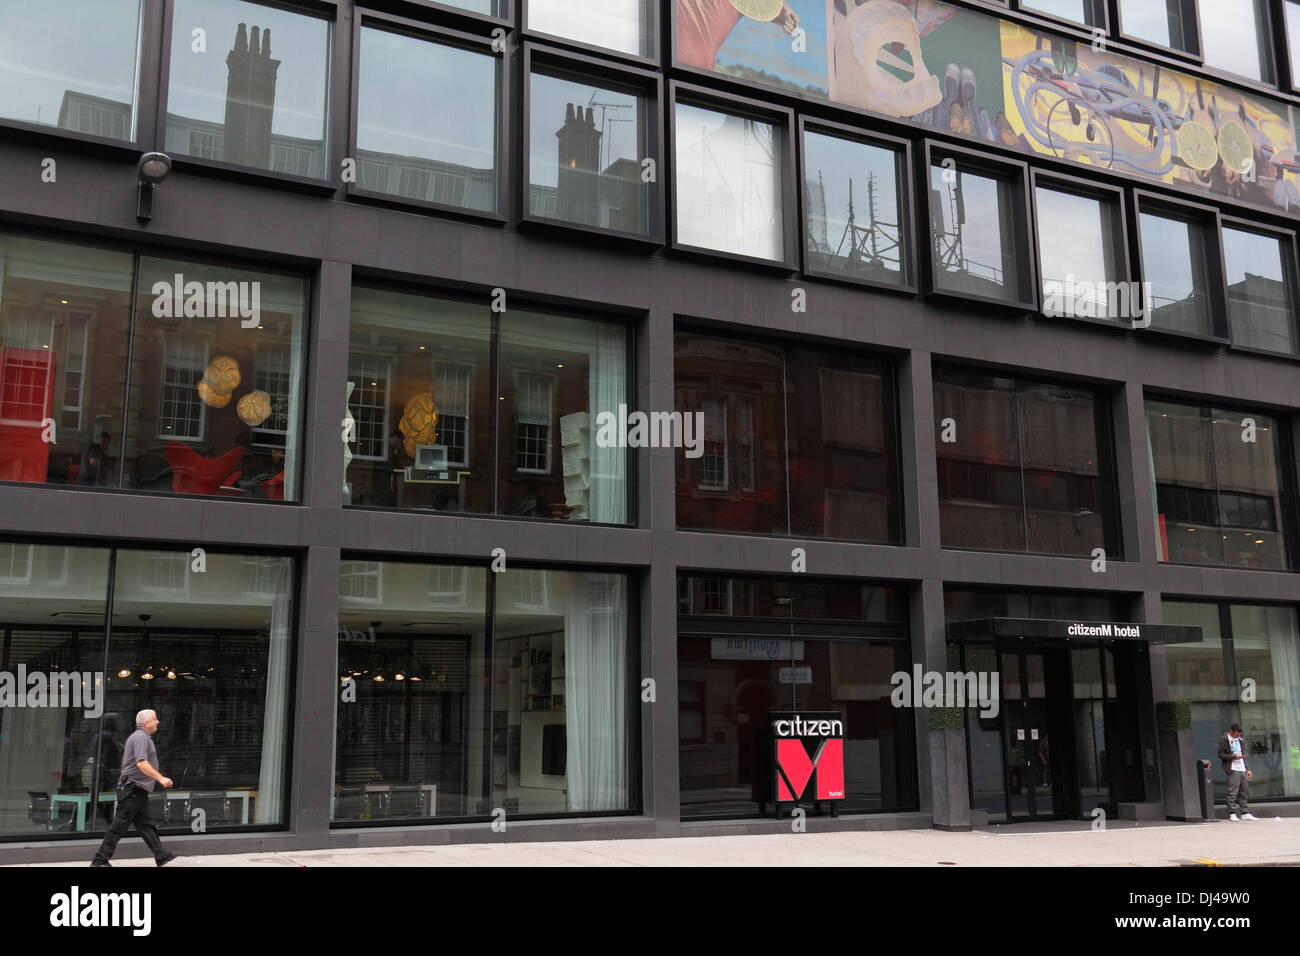 Citizen M Hotel in Glasgow City Centre, Schottland, UK Stockbild